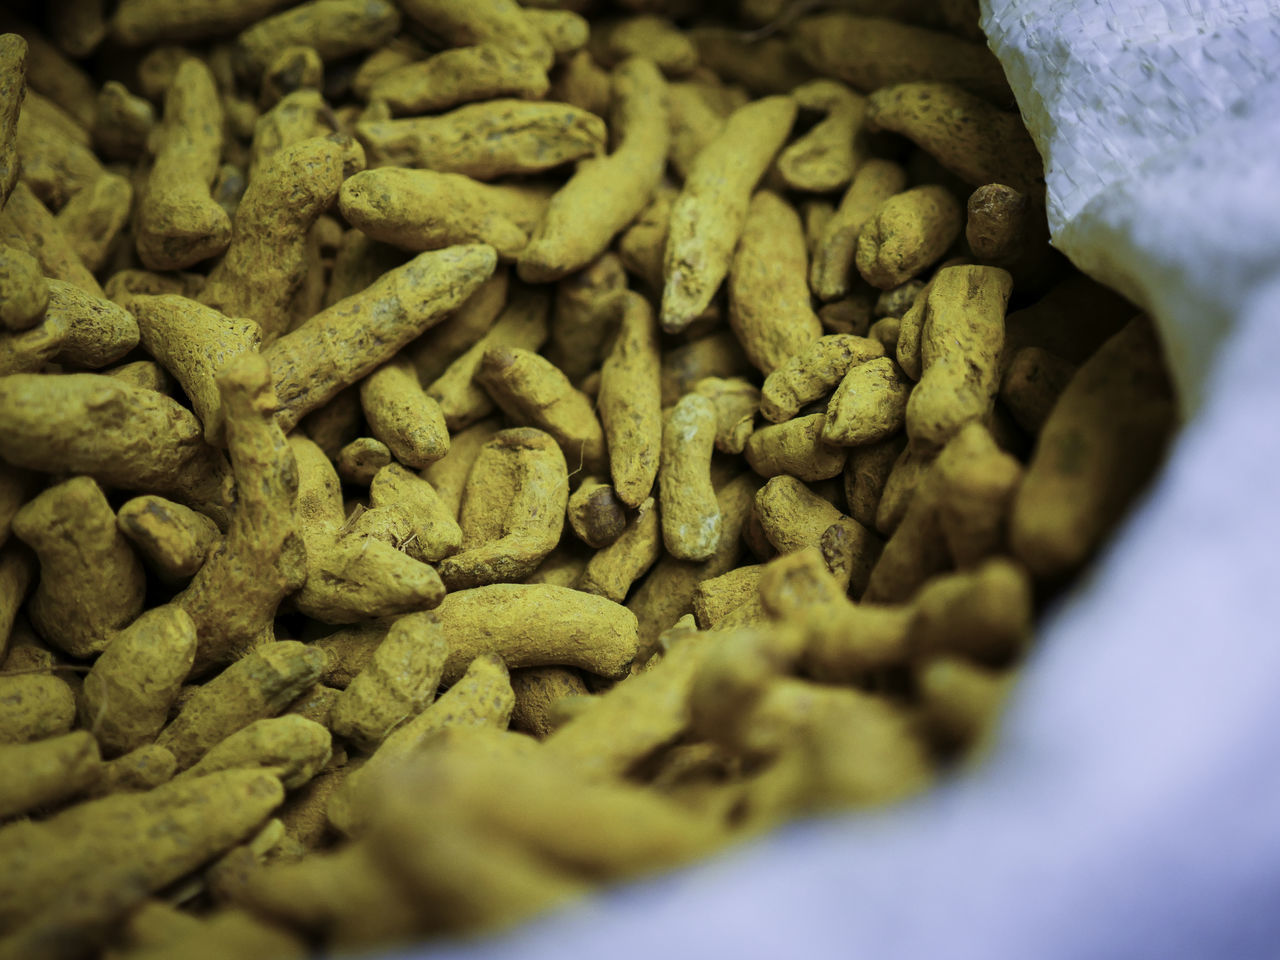 Asian Spices Close-up Curcuma Curcuma Root Curcumin Root Day Exotic Food Food Freshness Horizontal Indian Spices Medicinal Plant No People Spice Spice Shop Turmeric  Turmeric Root Yellow Yellow Color